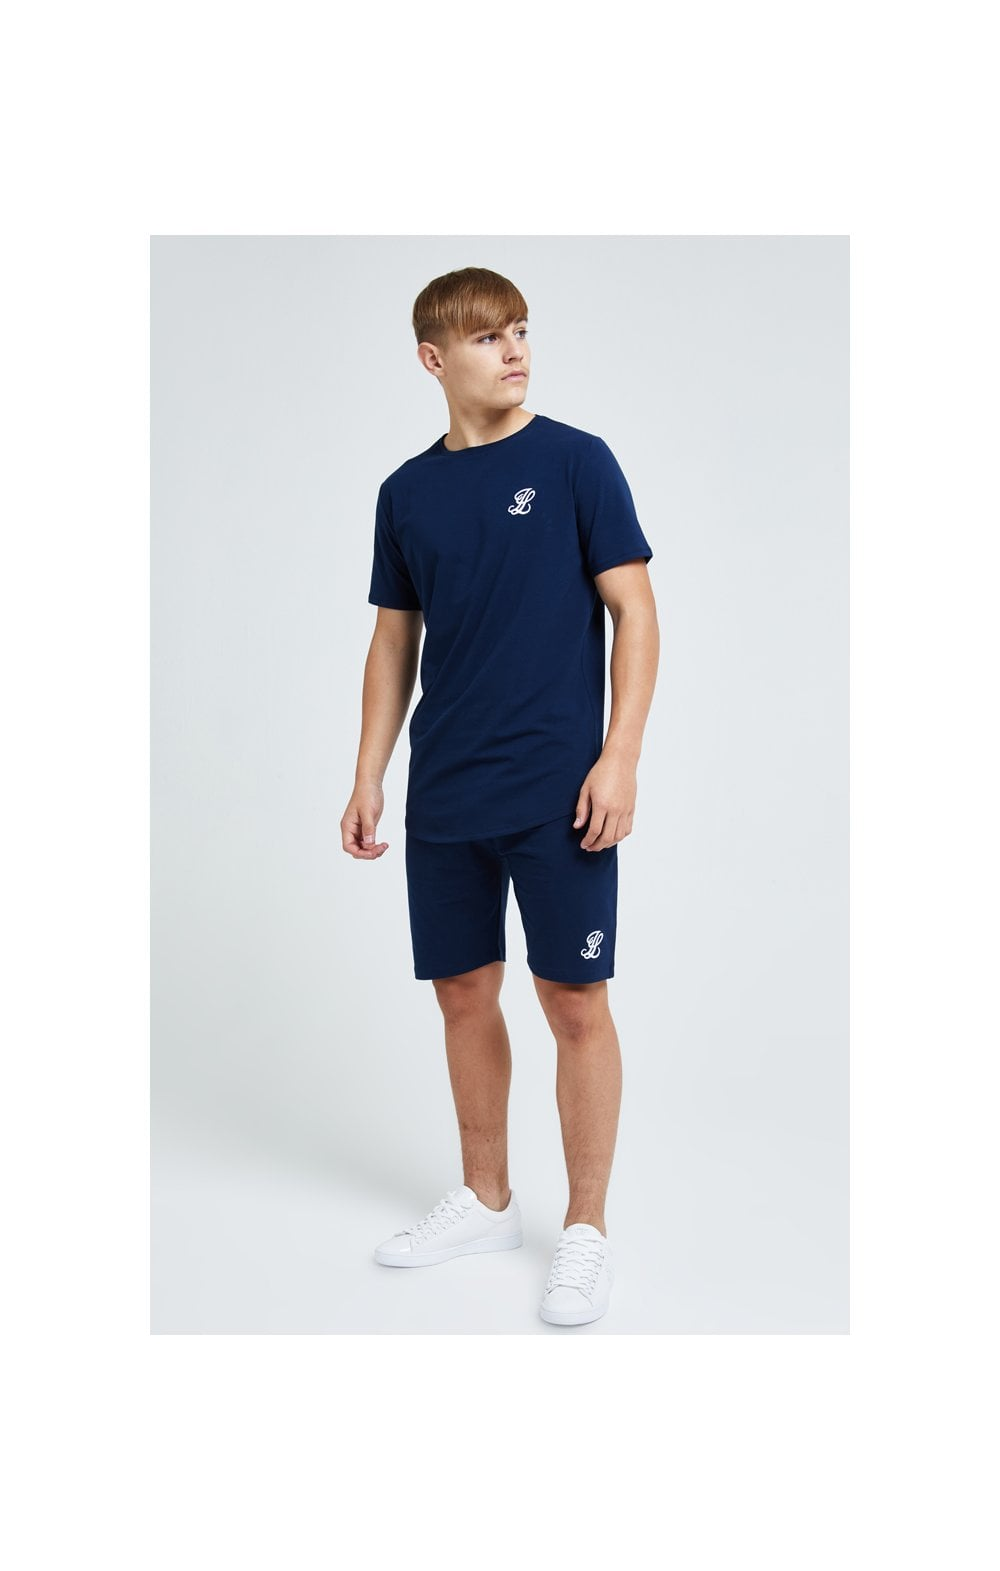 Load image into Gallery viewer, Illusive London Core Tee - Navy (4)